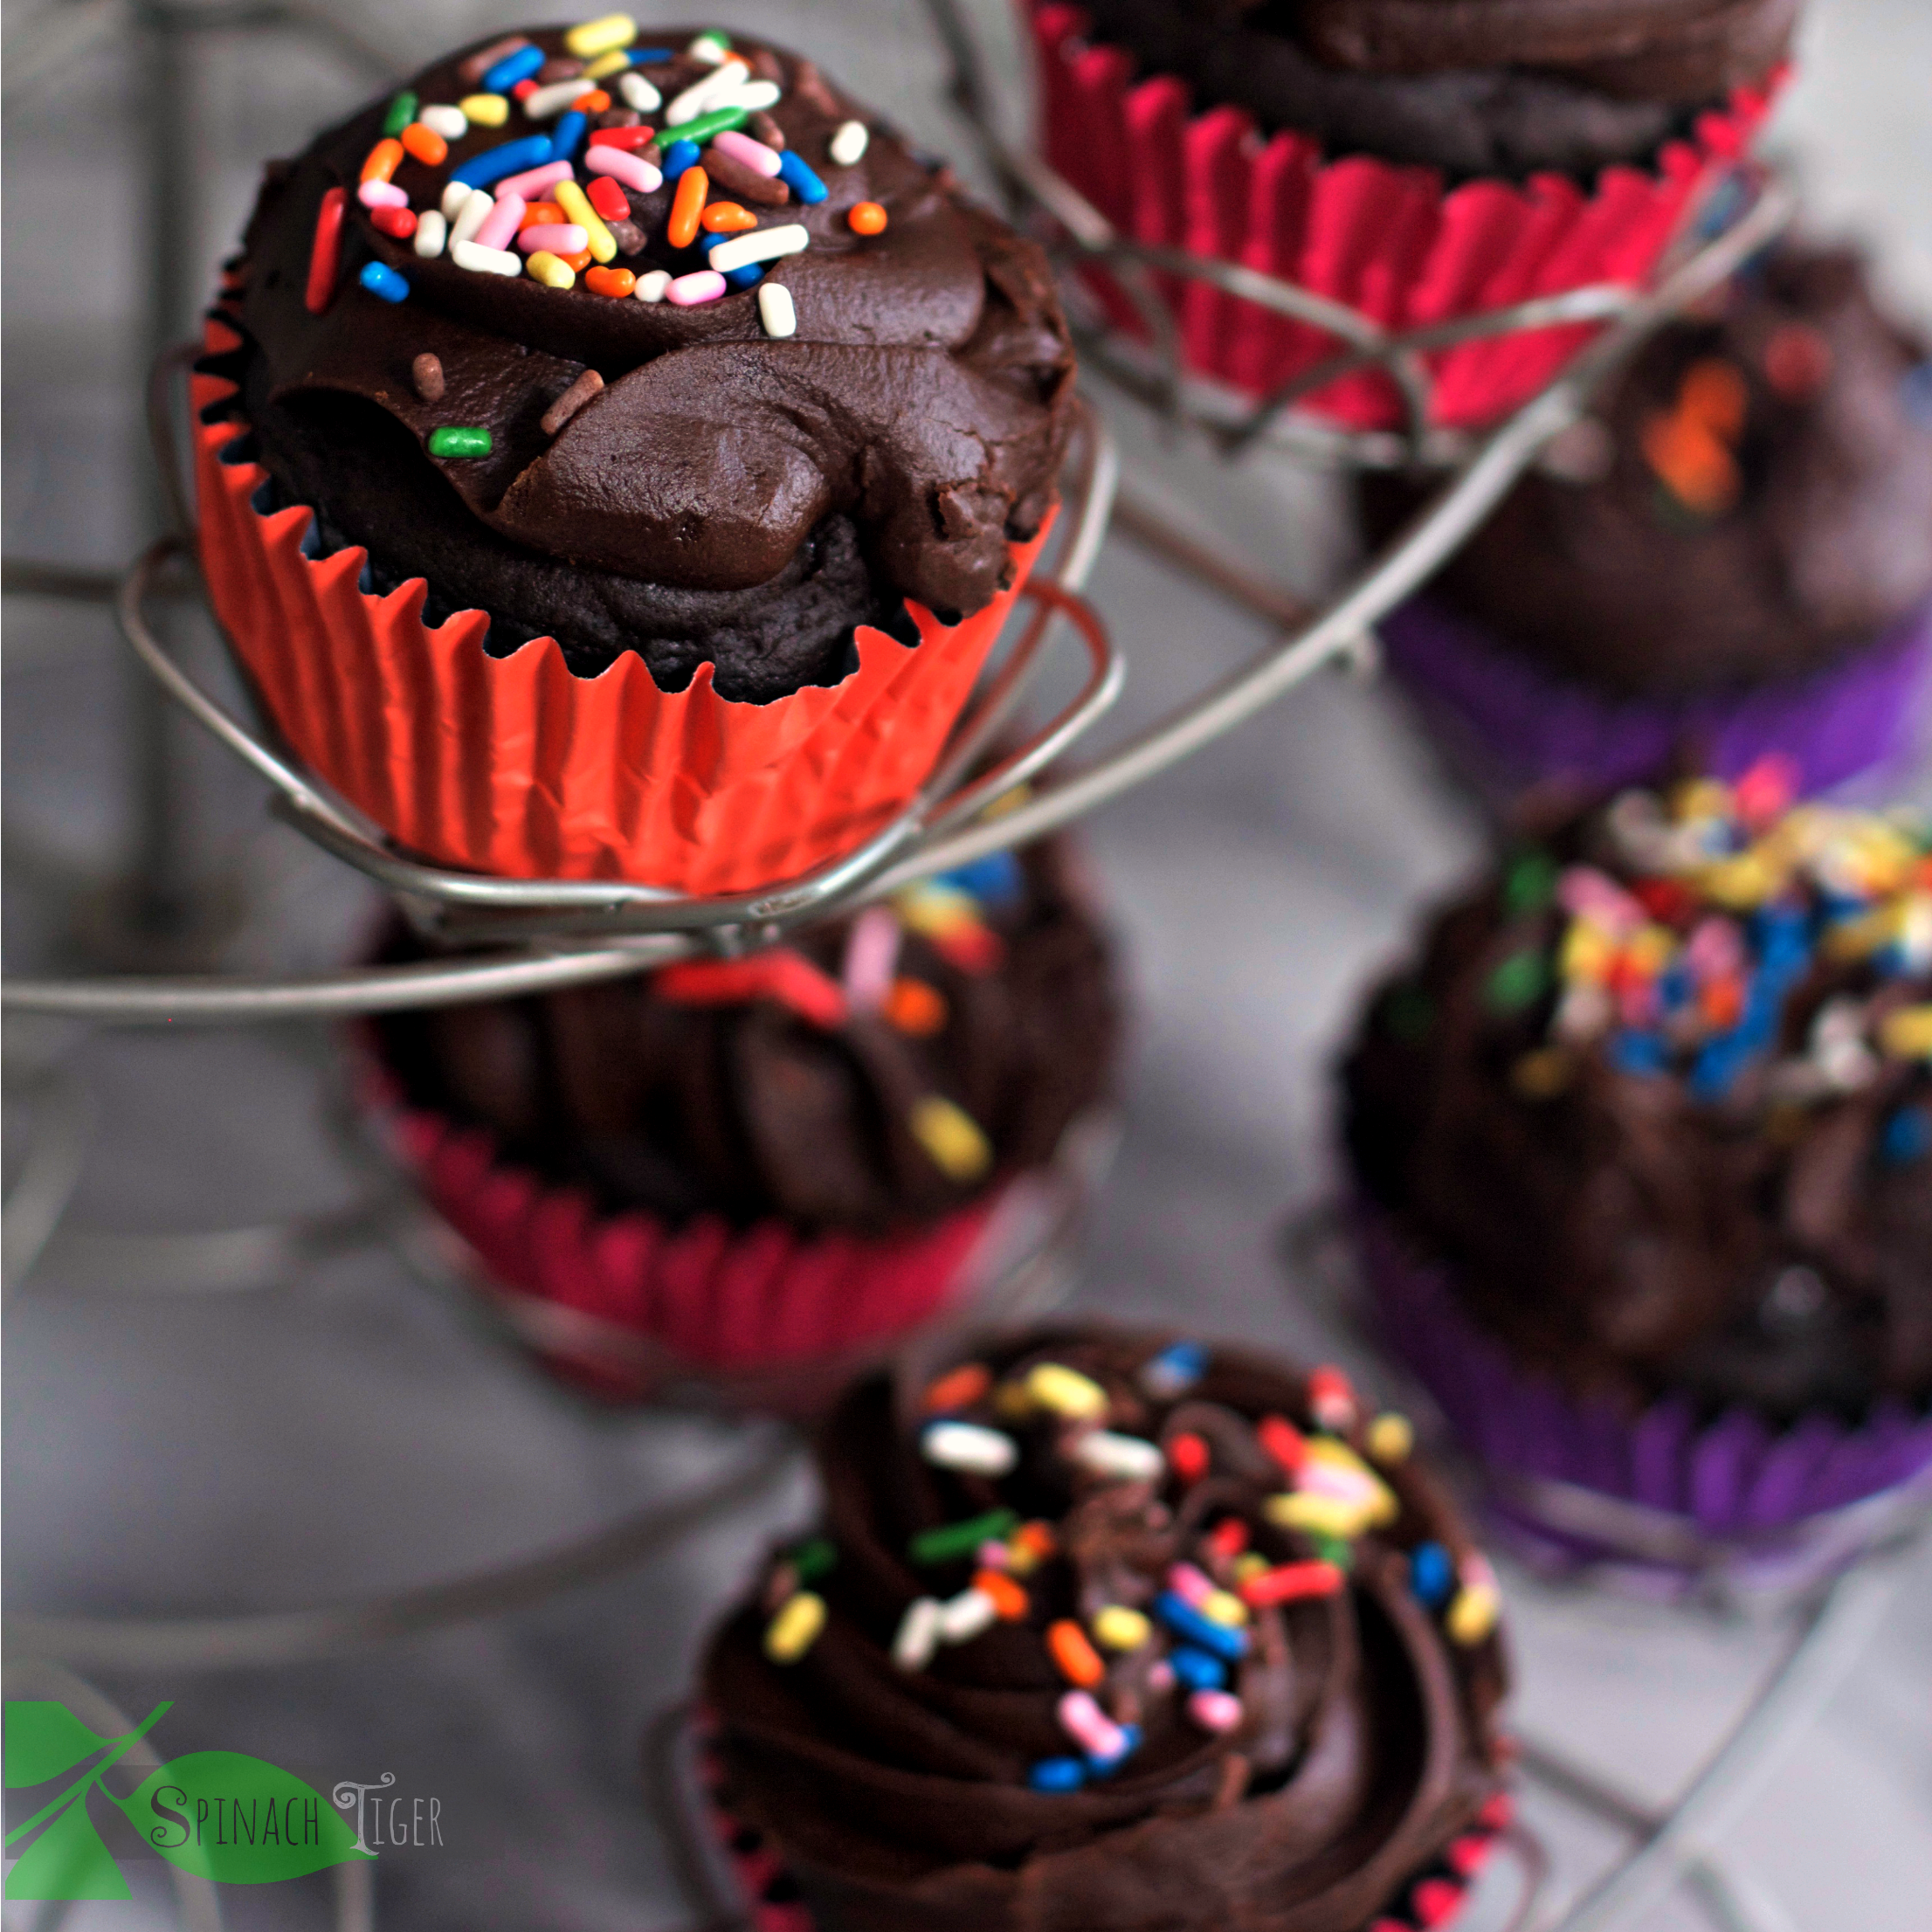 Gluten Free Chocolate Cupcakes and Holiday Side Dishes from Spinach Tiger